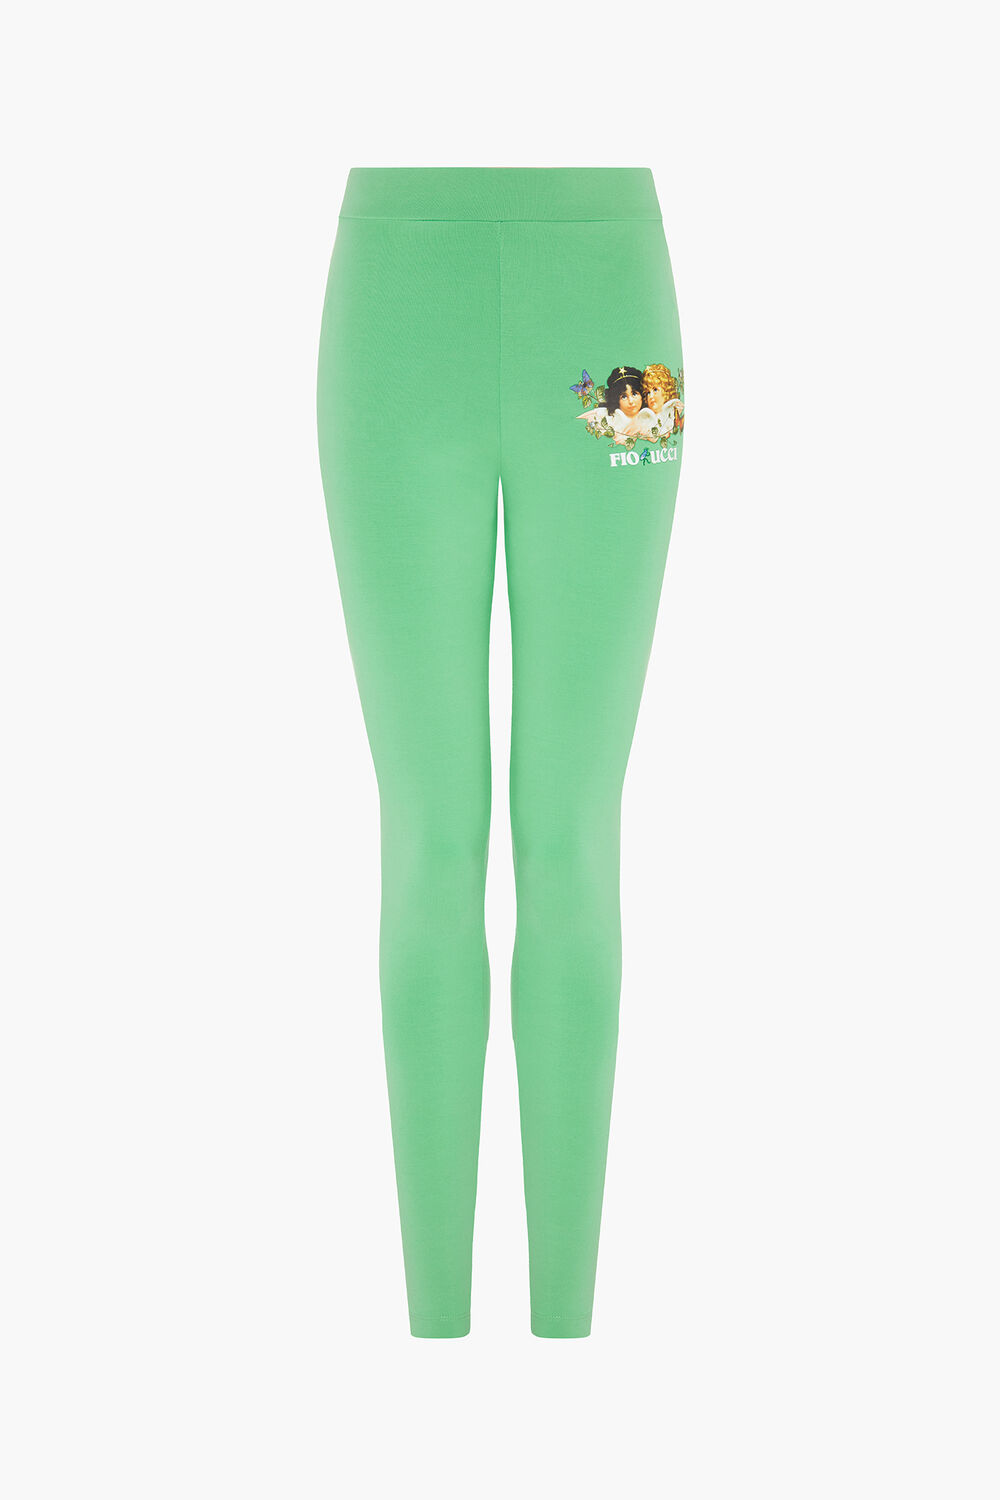 Woodland Angels Leggings Green